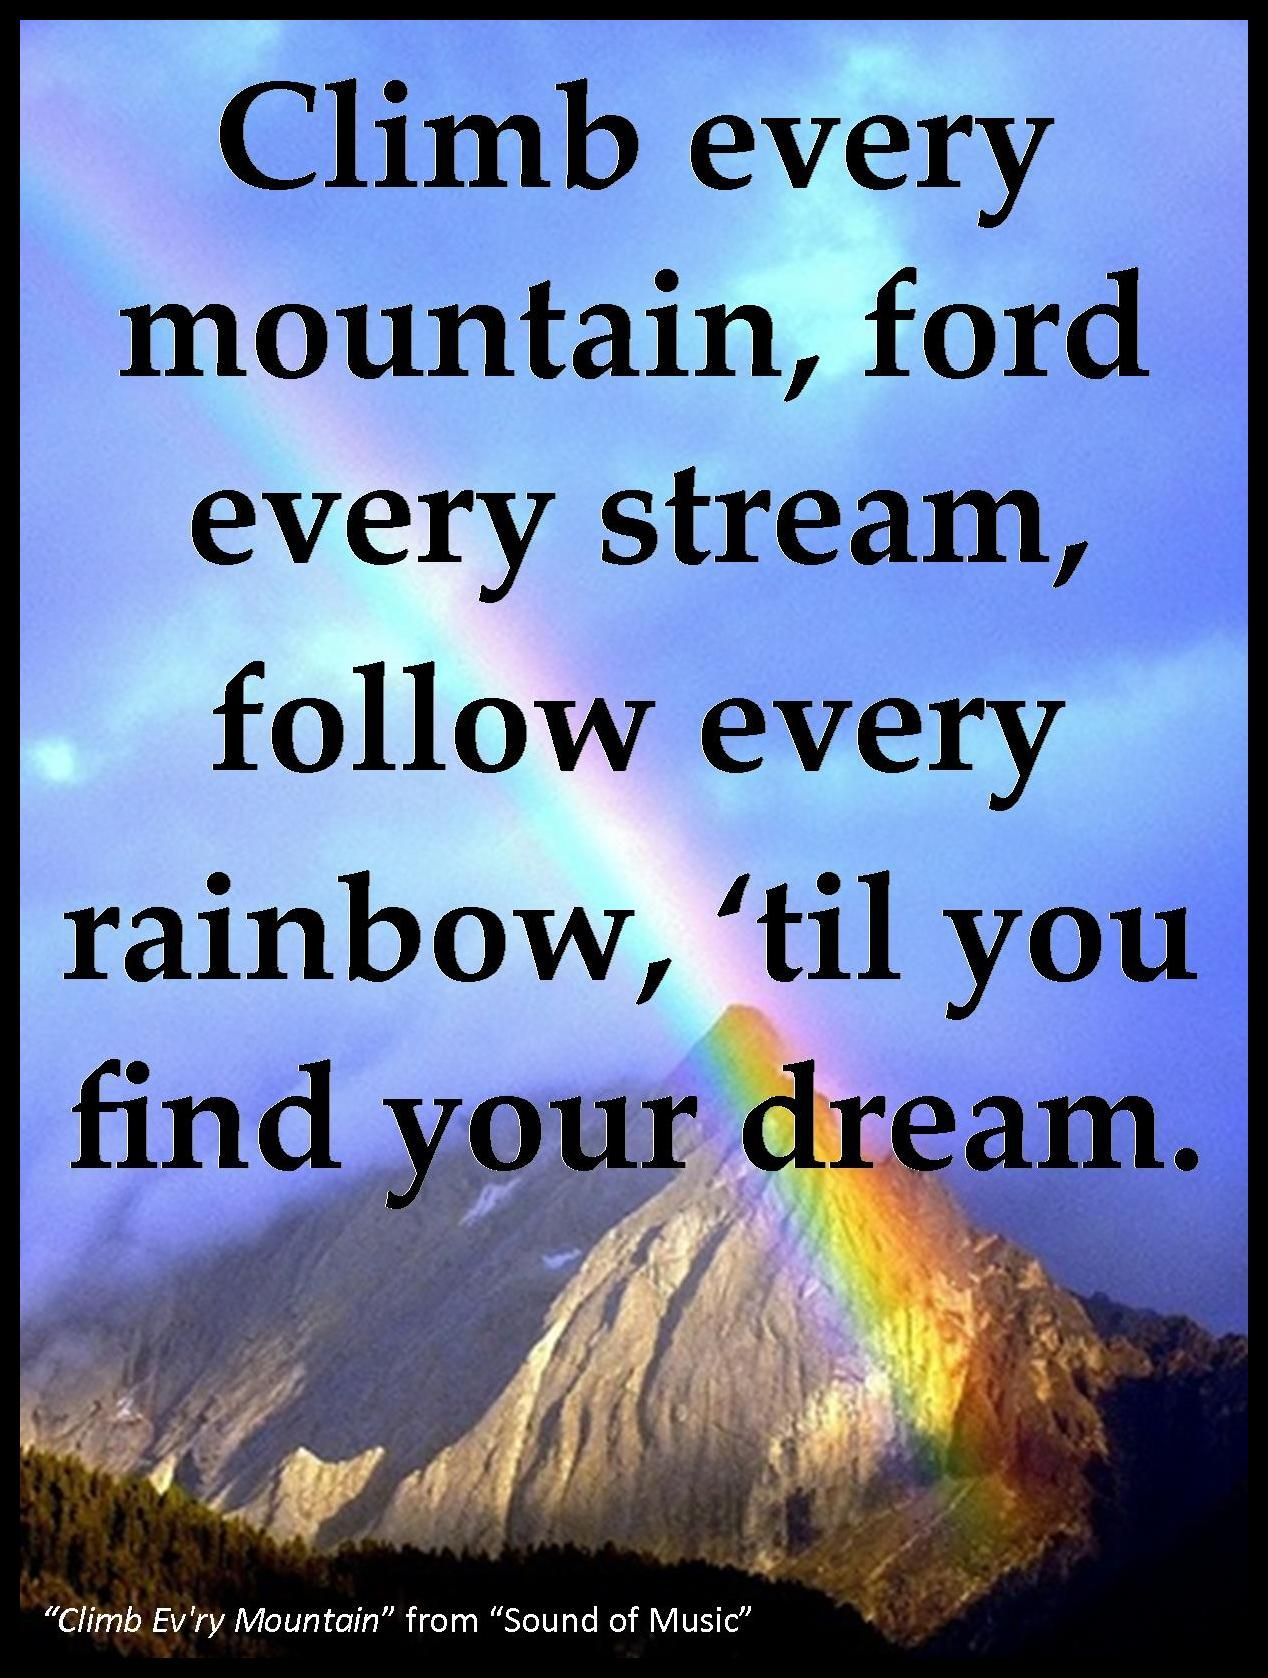 """Climb every mountain, ford every stream, follow every rainbow, 'til you find your dream."""" Sound of Music quote  """"Maria, these walls were not meant to shut out problems. You have to face them. You have to live the life you were born to live"""" – Mother Abbess."""